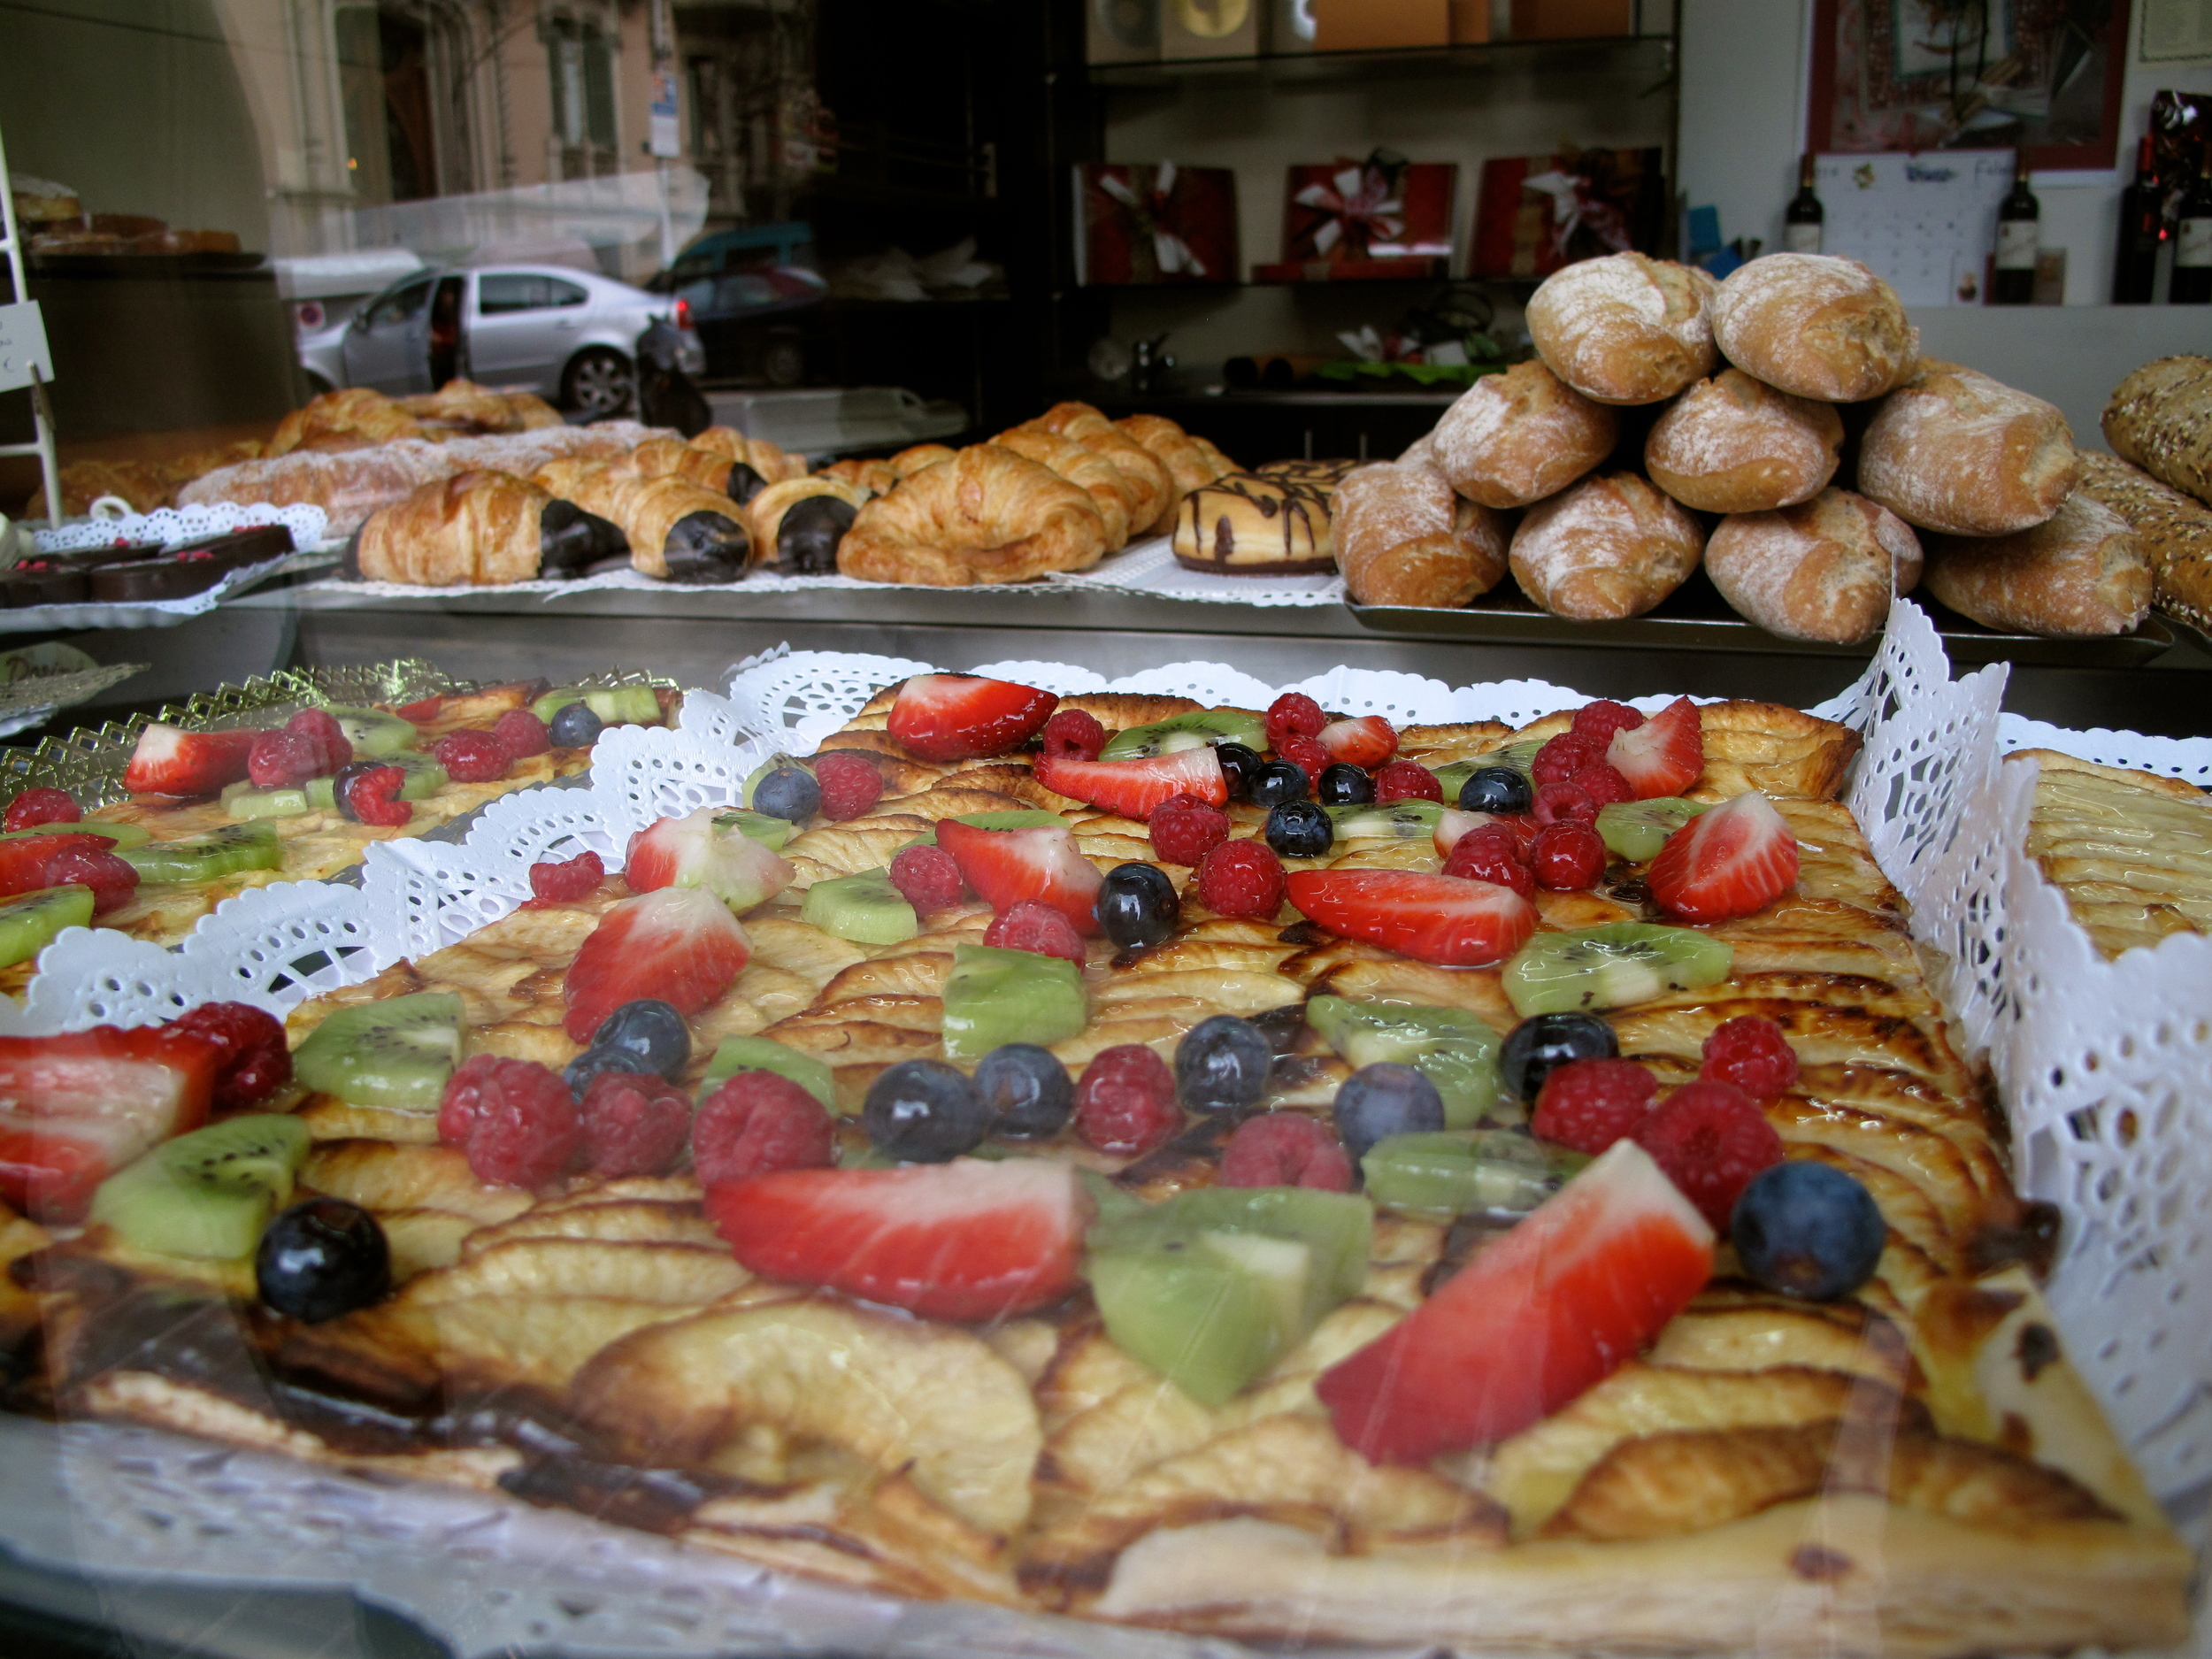 Spanish pastries with fruit in Barcelona